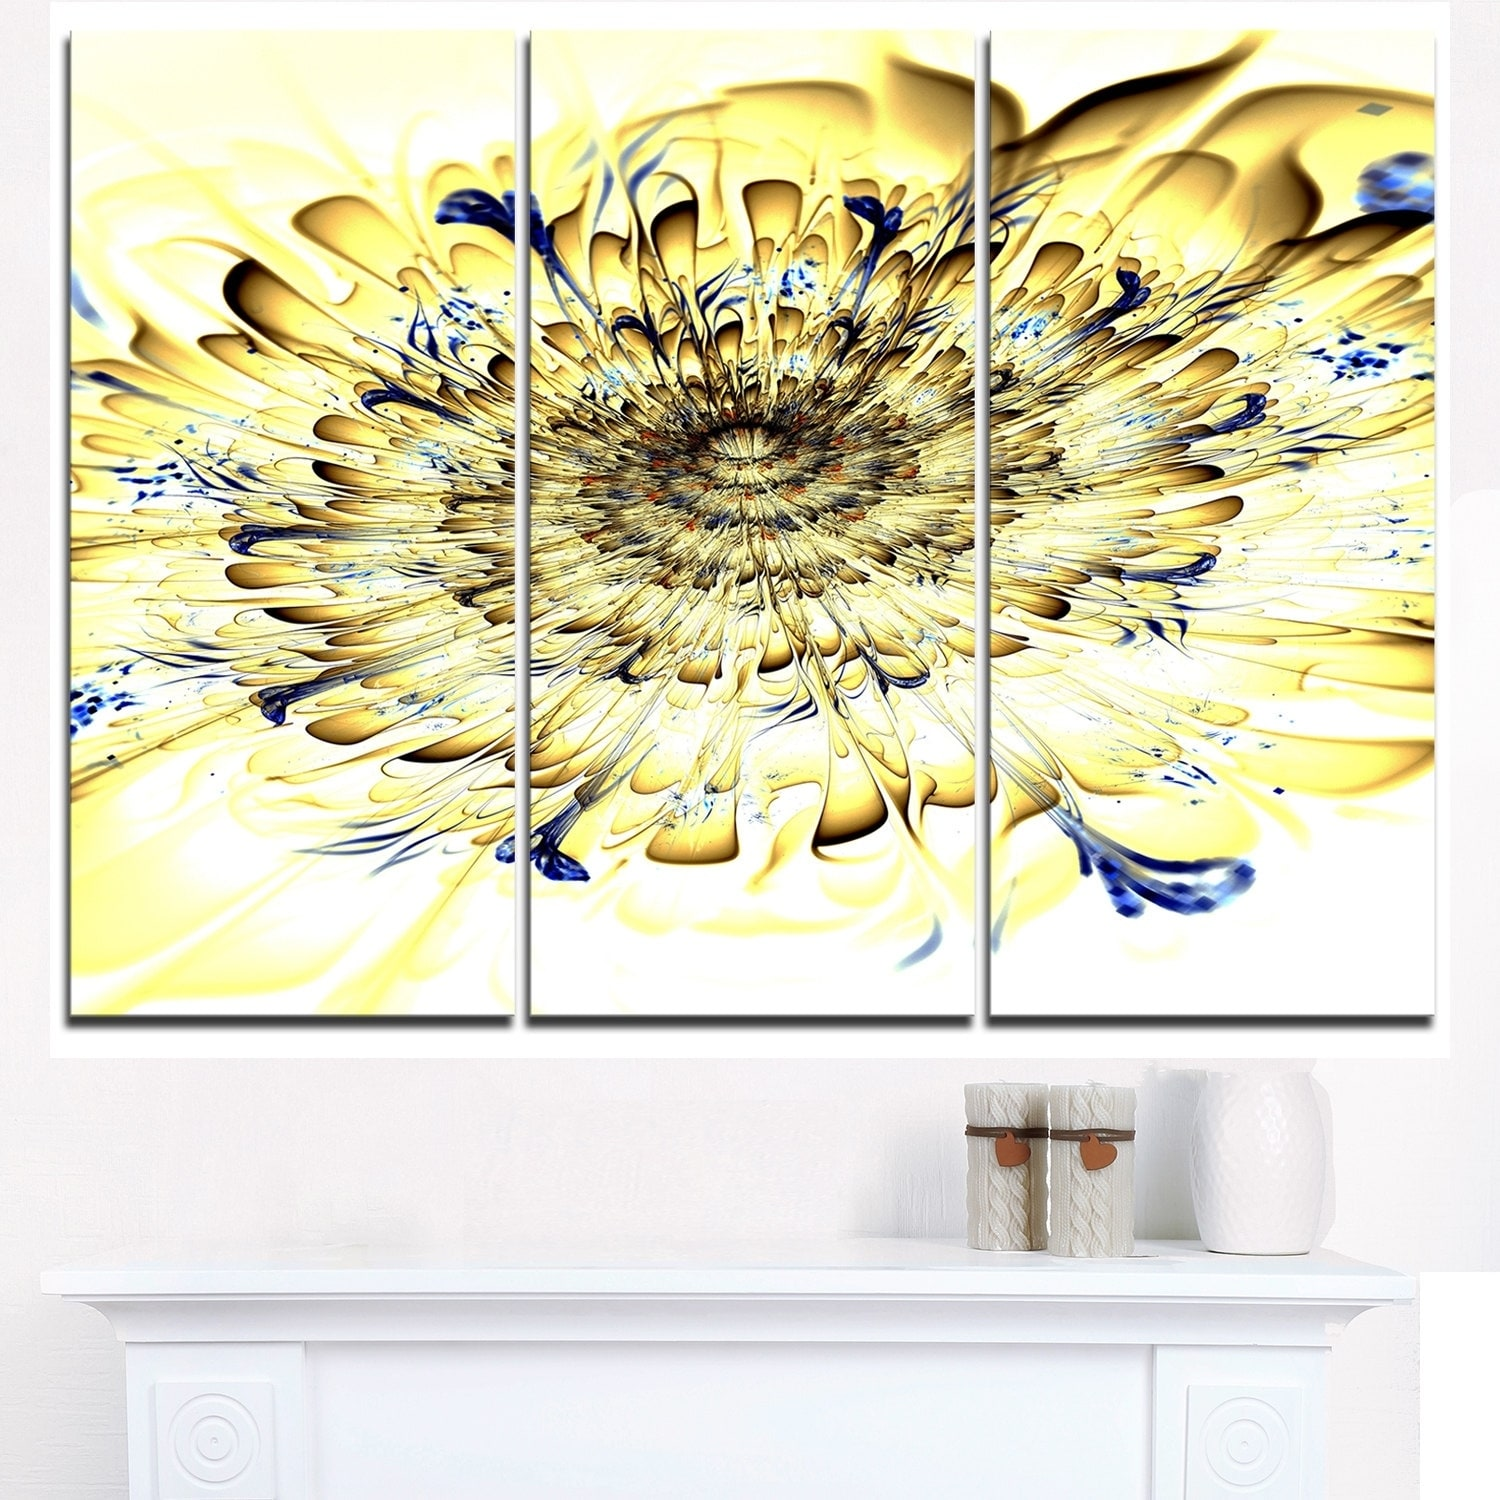 Wonderful Metal Sunburst Wall Art Gallery - The Wall Art Decorations ...